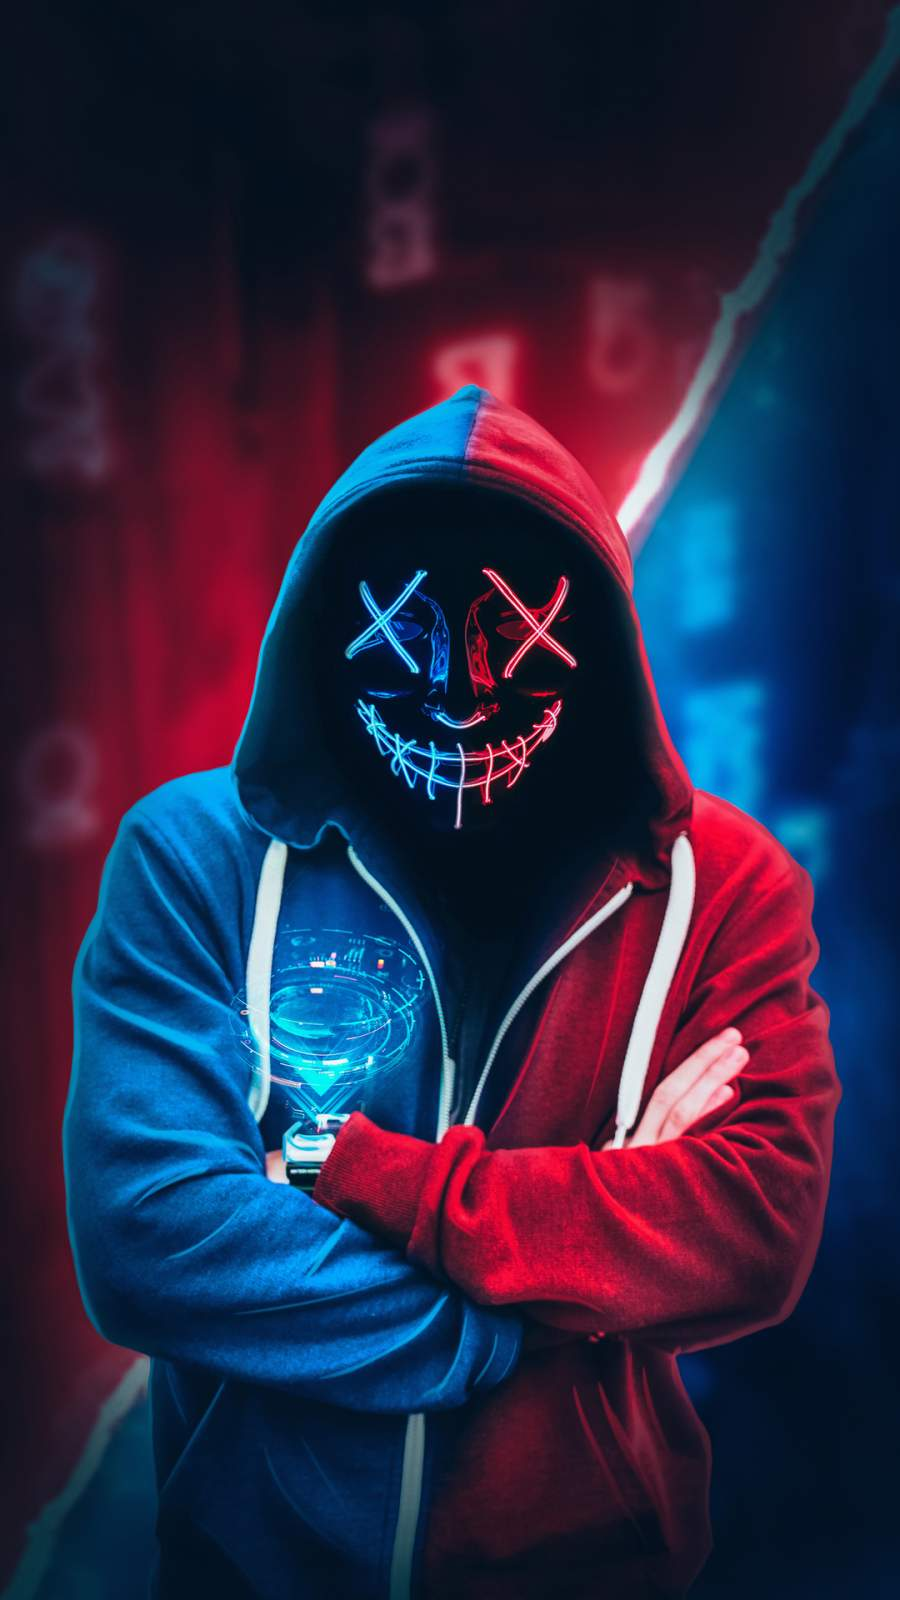 Anonymous Neon Mask Hoodie iPhone Wallpaper